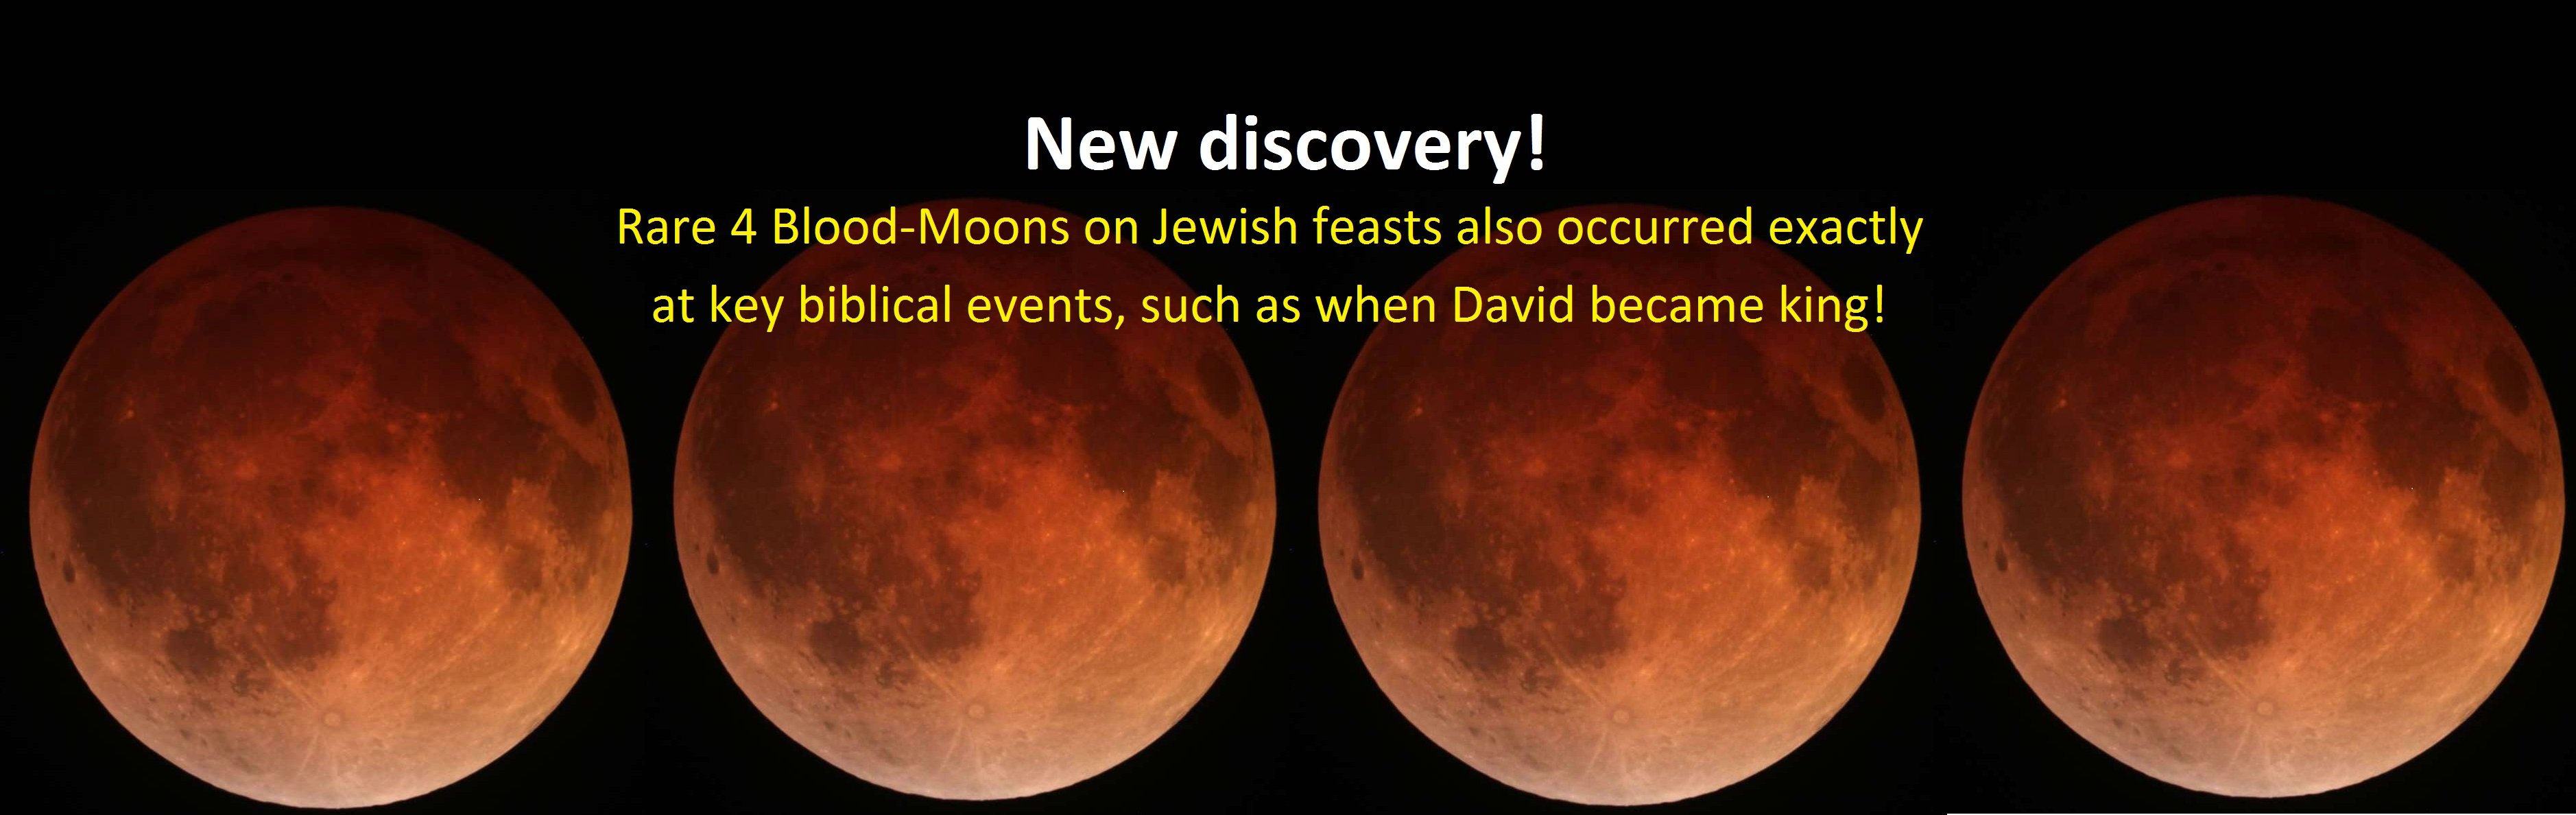 blood moon tonight prophecy - photo #11